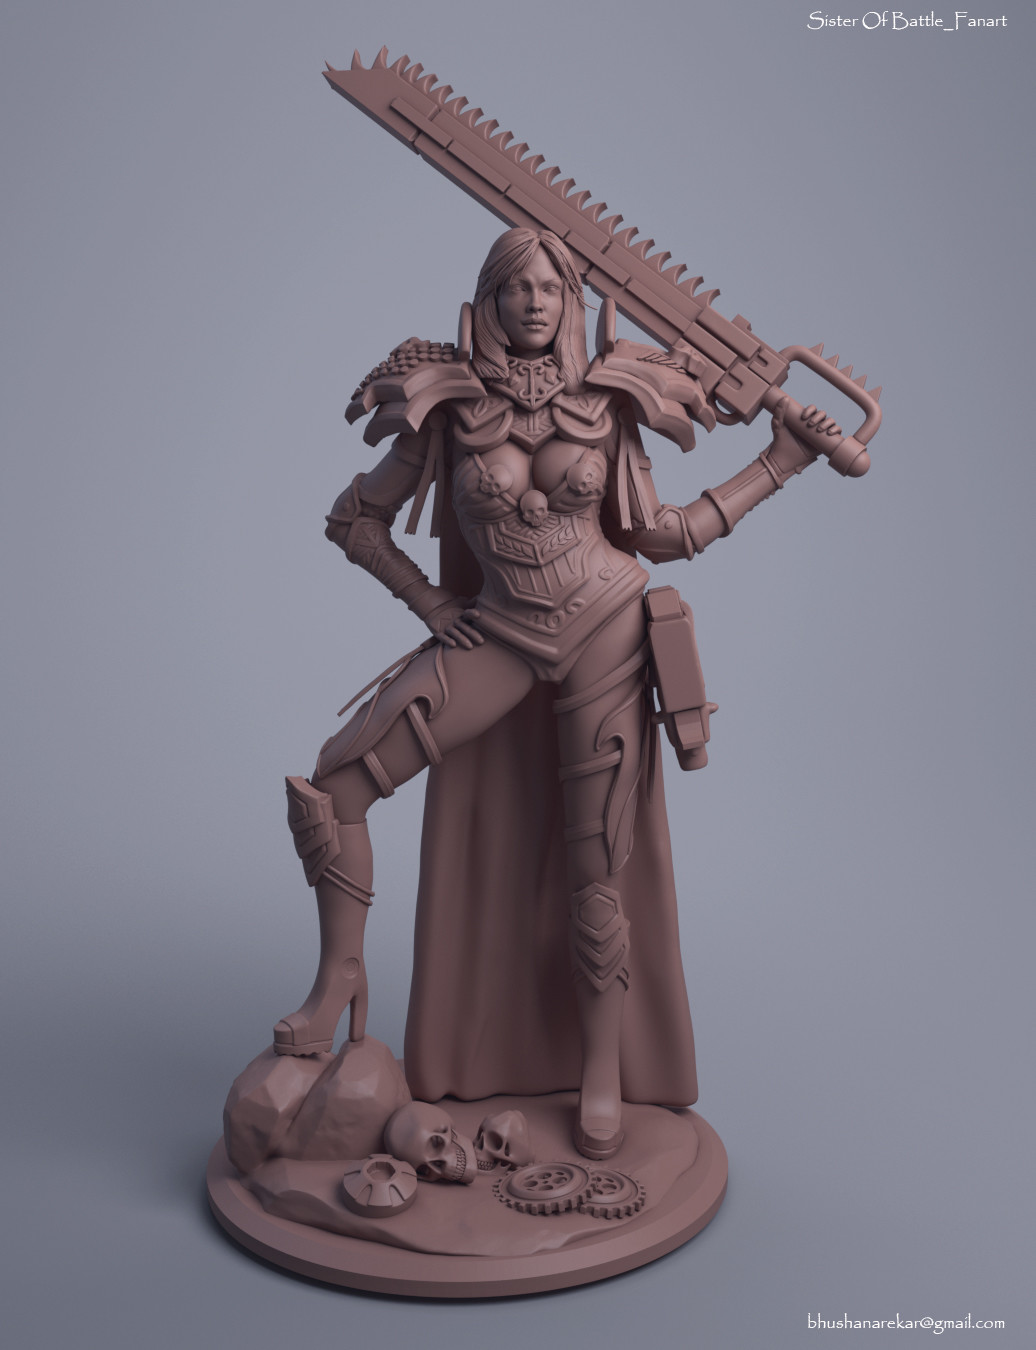 Bhushan arekar sister of battle clay